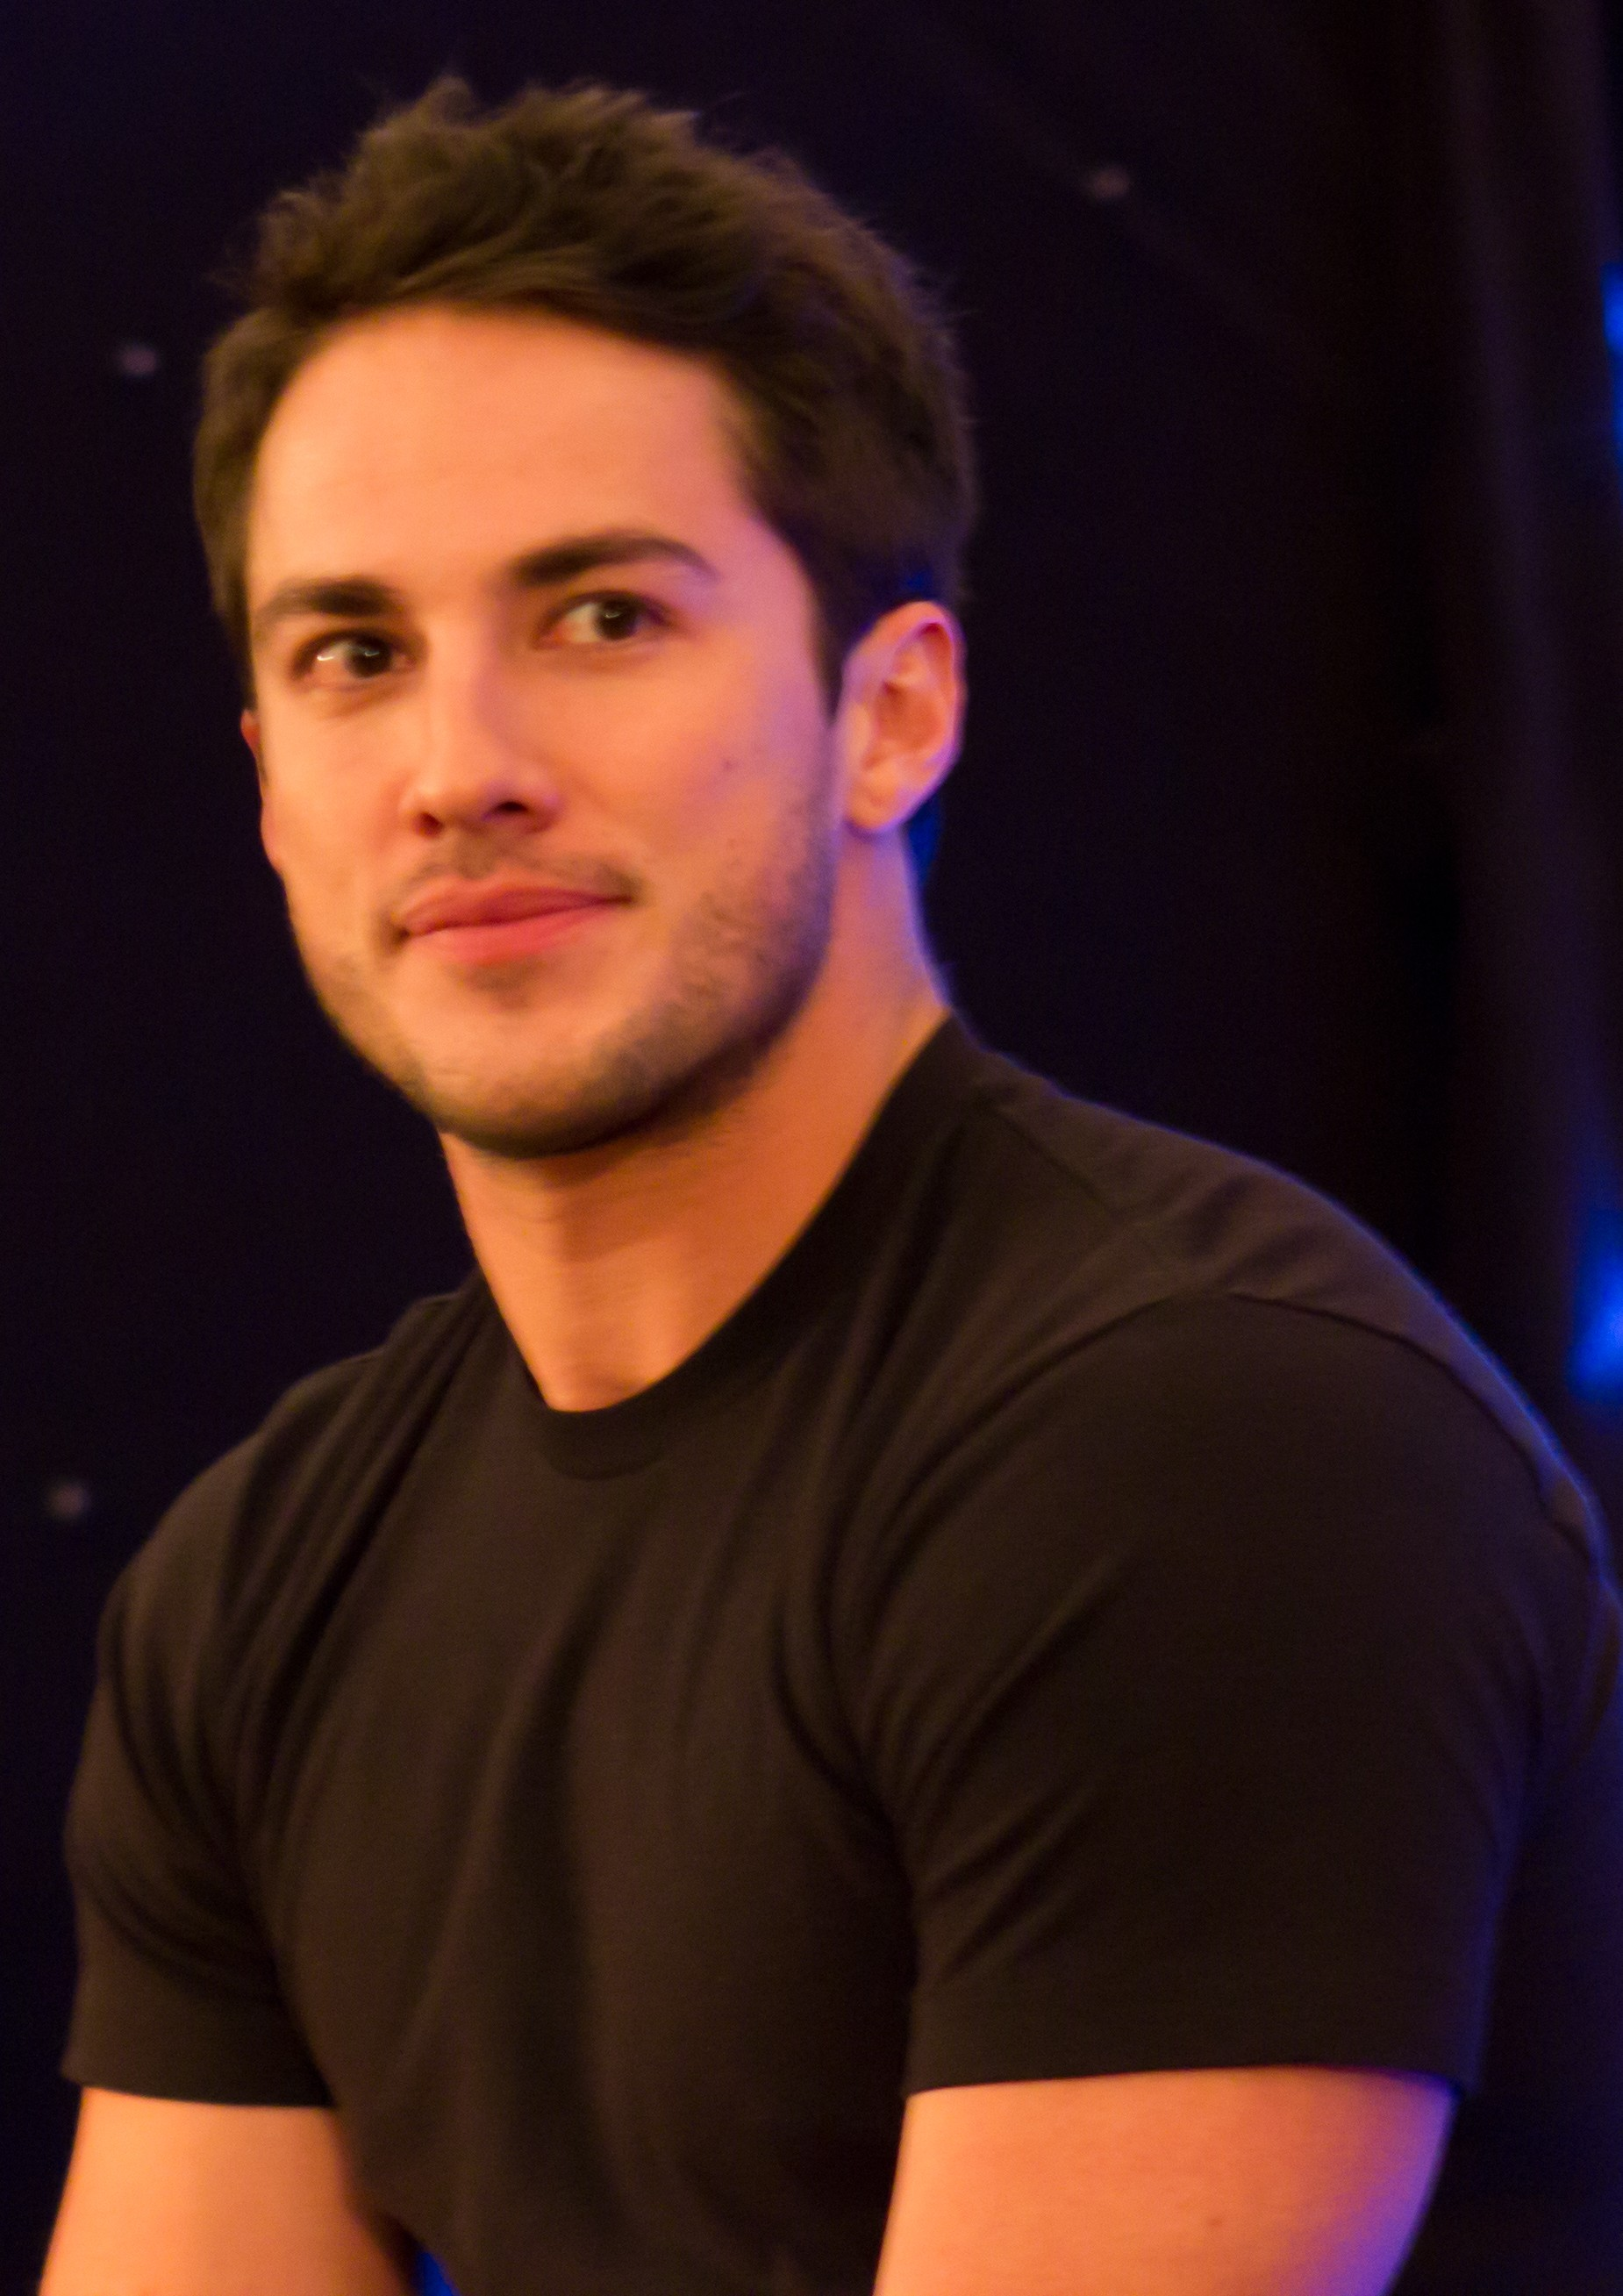 Michael Trevino Michael Trevino on June